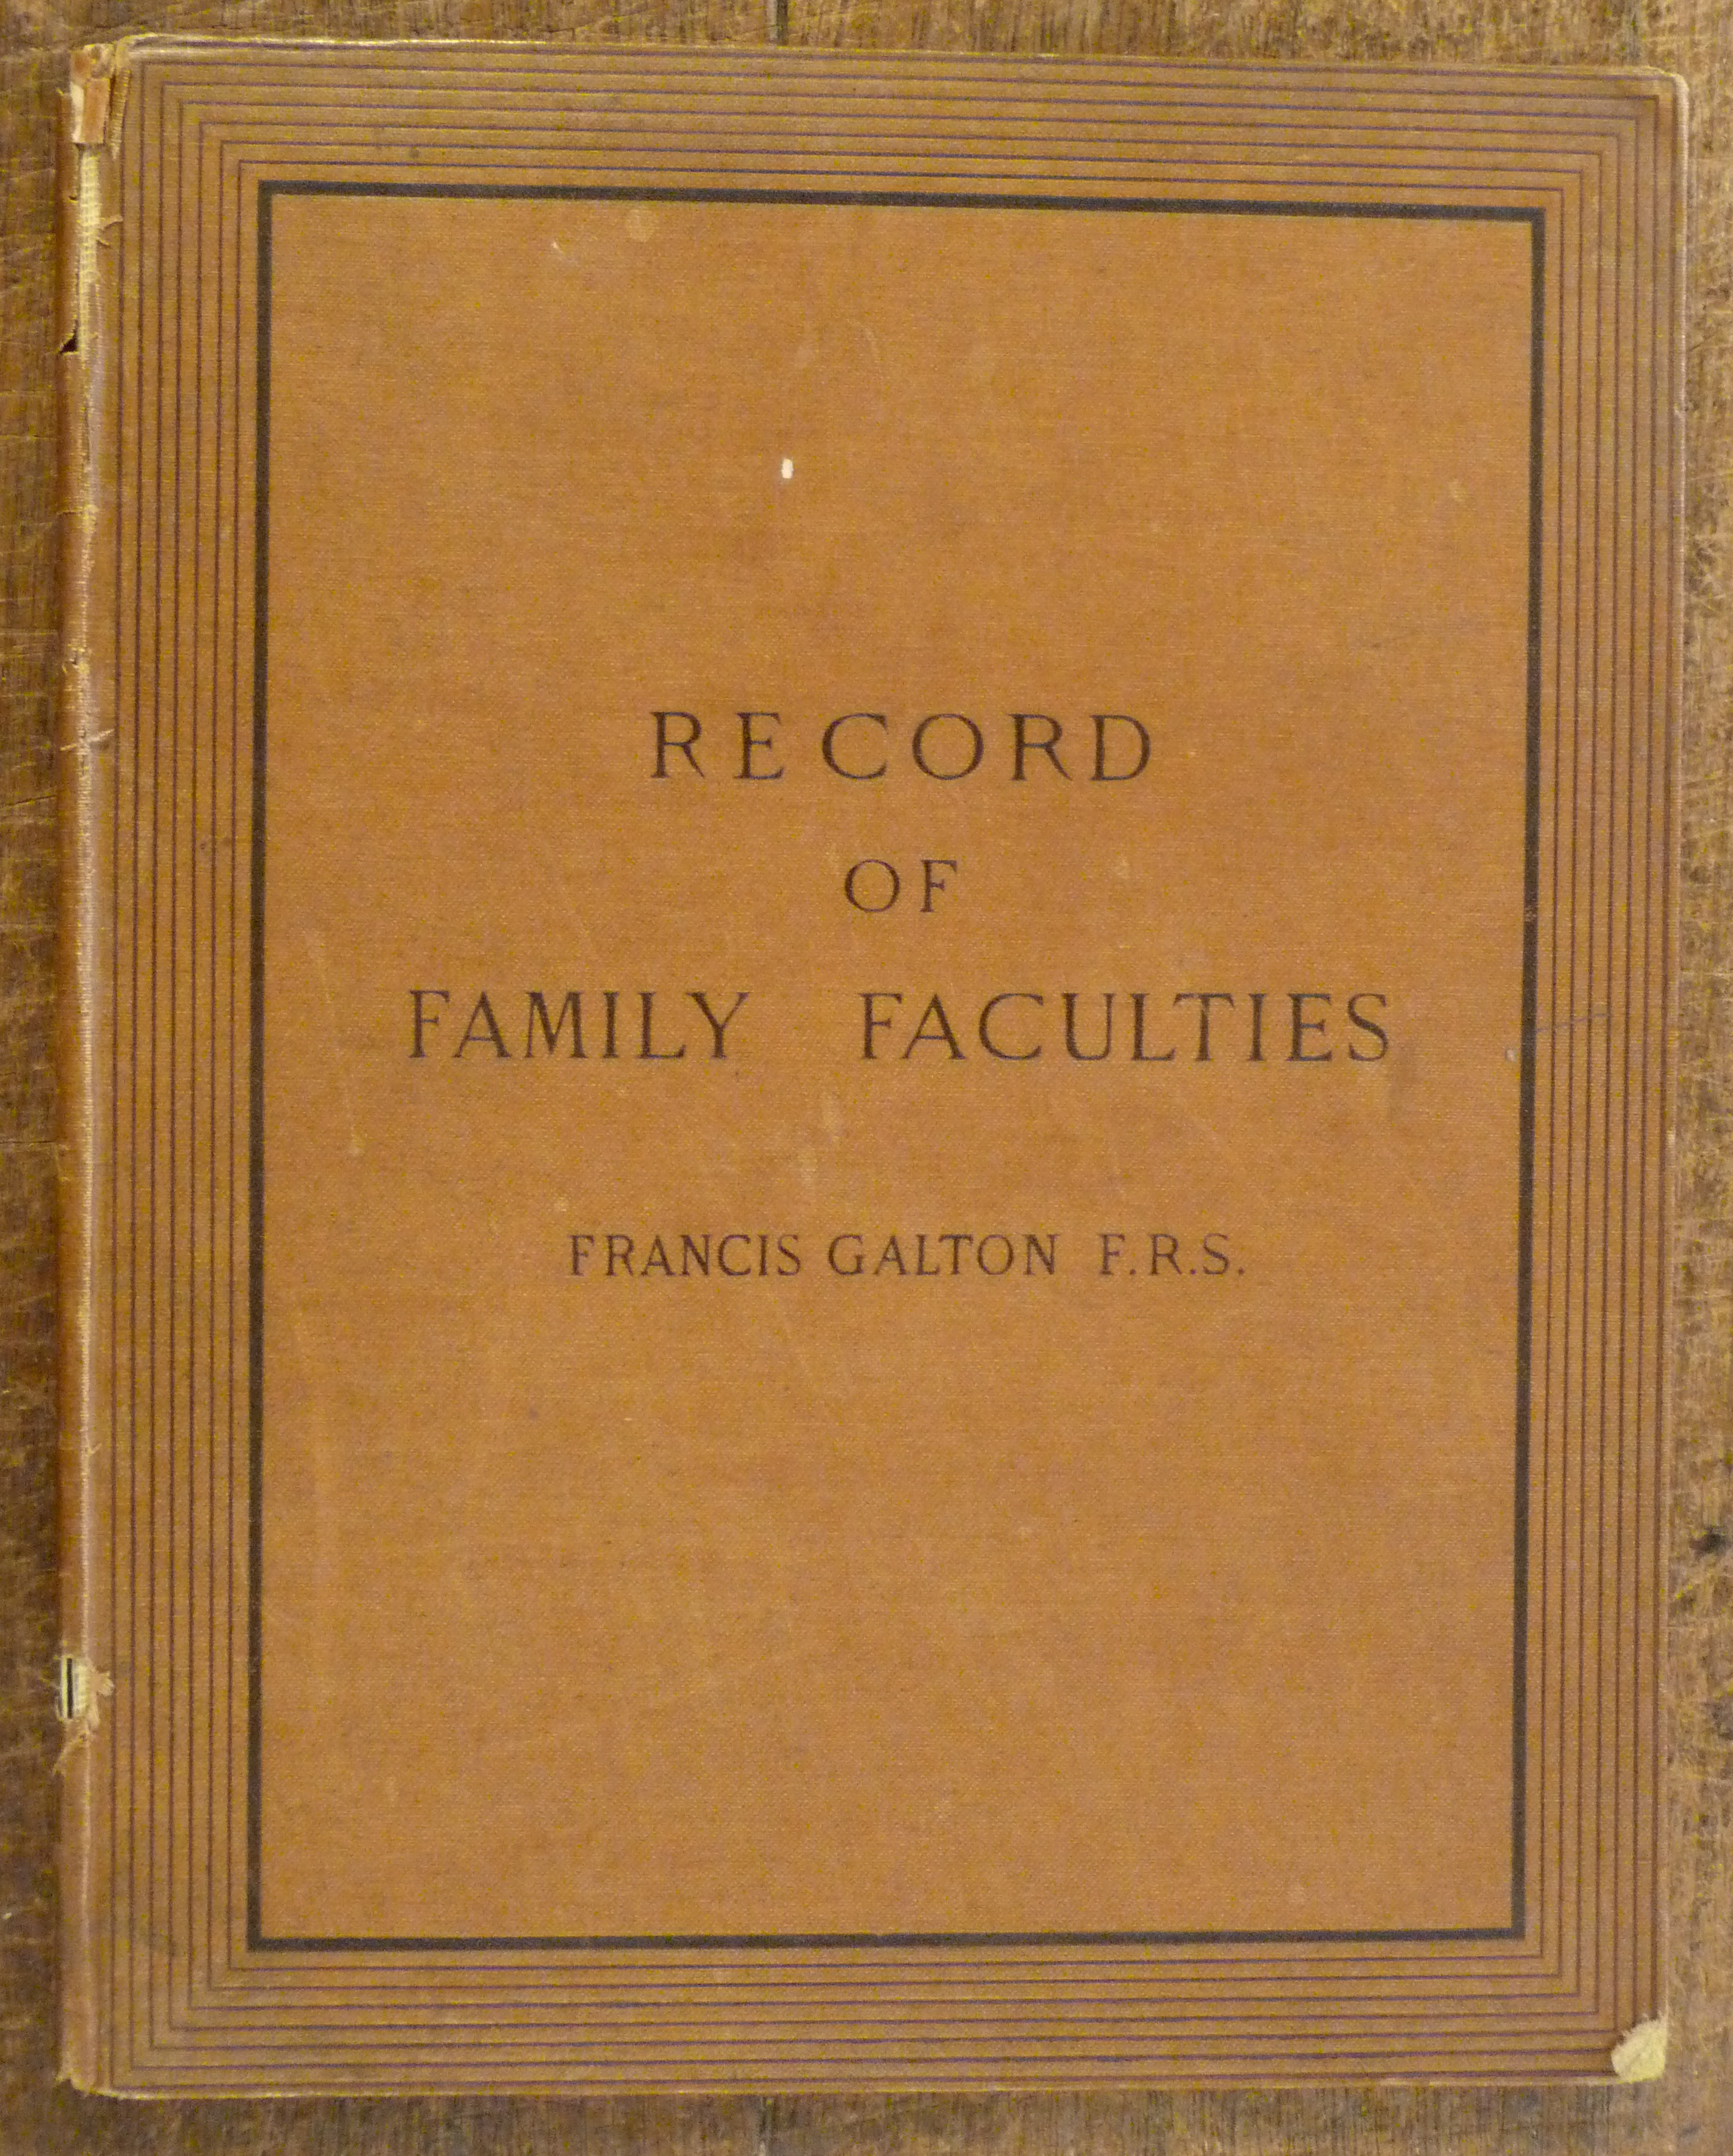 Image for Record of Family Faculties.  Consisting of Tabular Forms And Directions For Entering Data, With An Explanatory Preface.